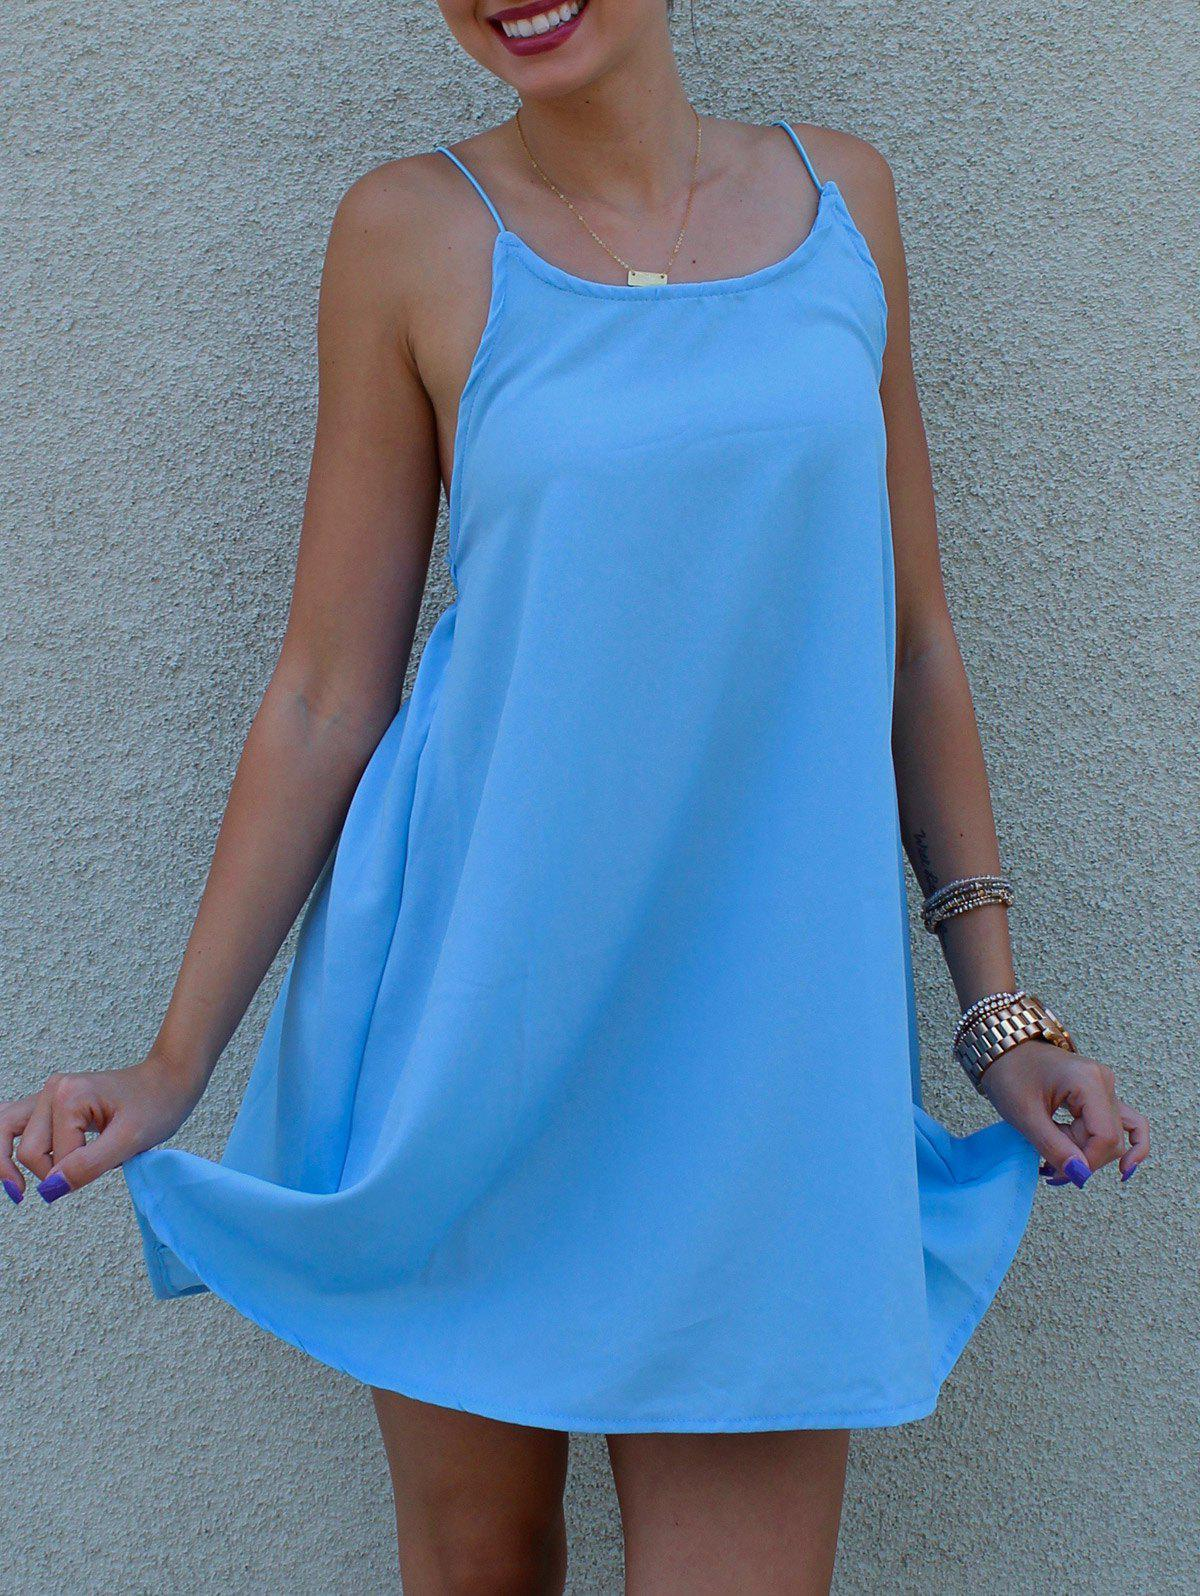 Women's Stylish Strappy Blue Cross Back Dress - AZURE XL